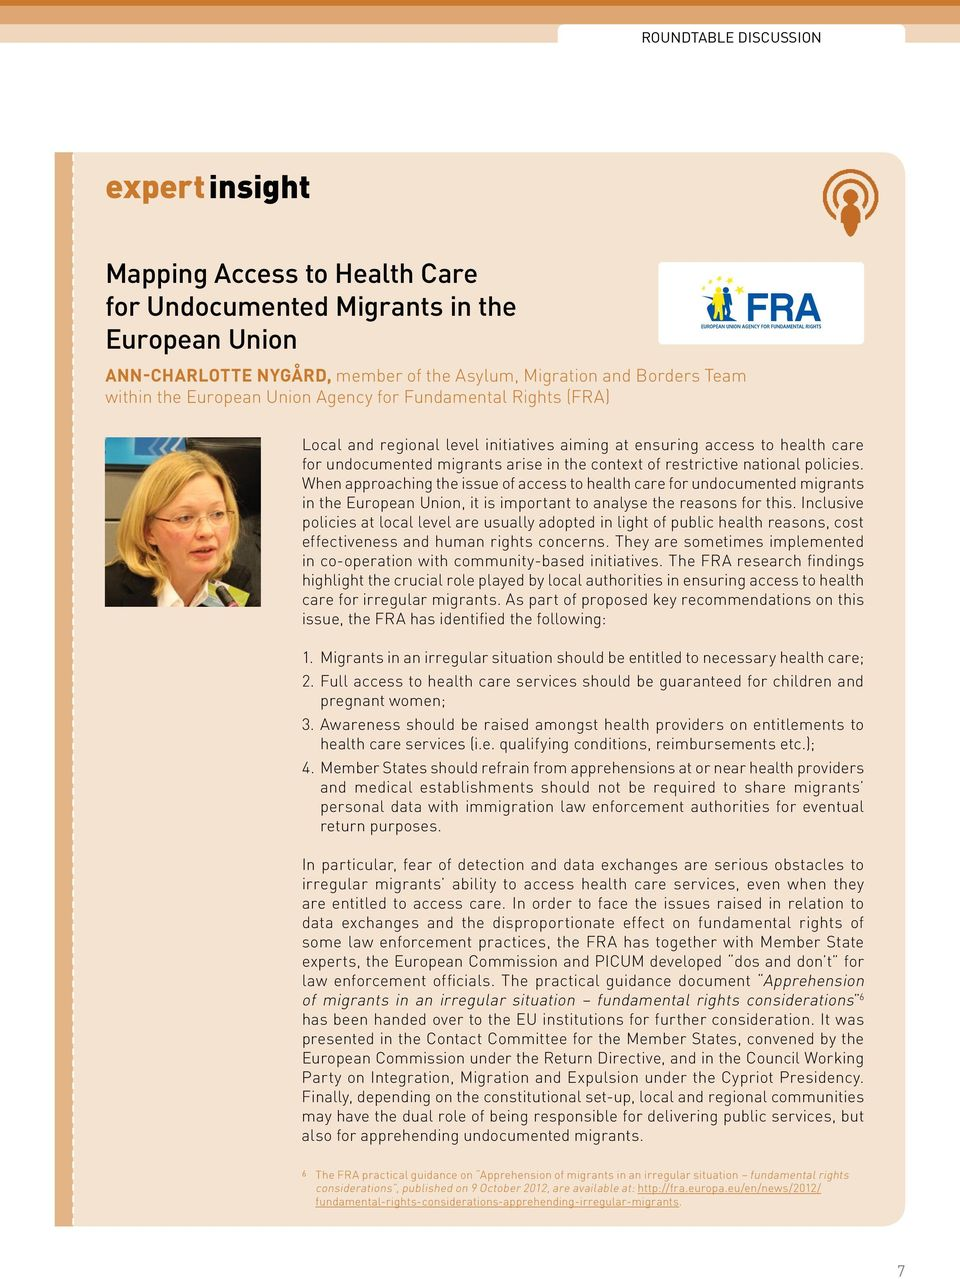 policies. When approaching the issue of access to health care for undocumented migrants in the European Union, it is important to analyse the reasons for this.